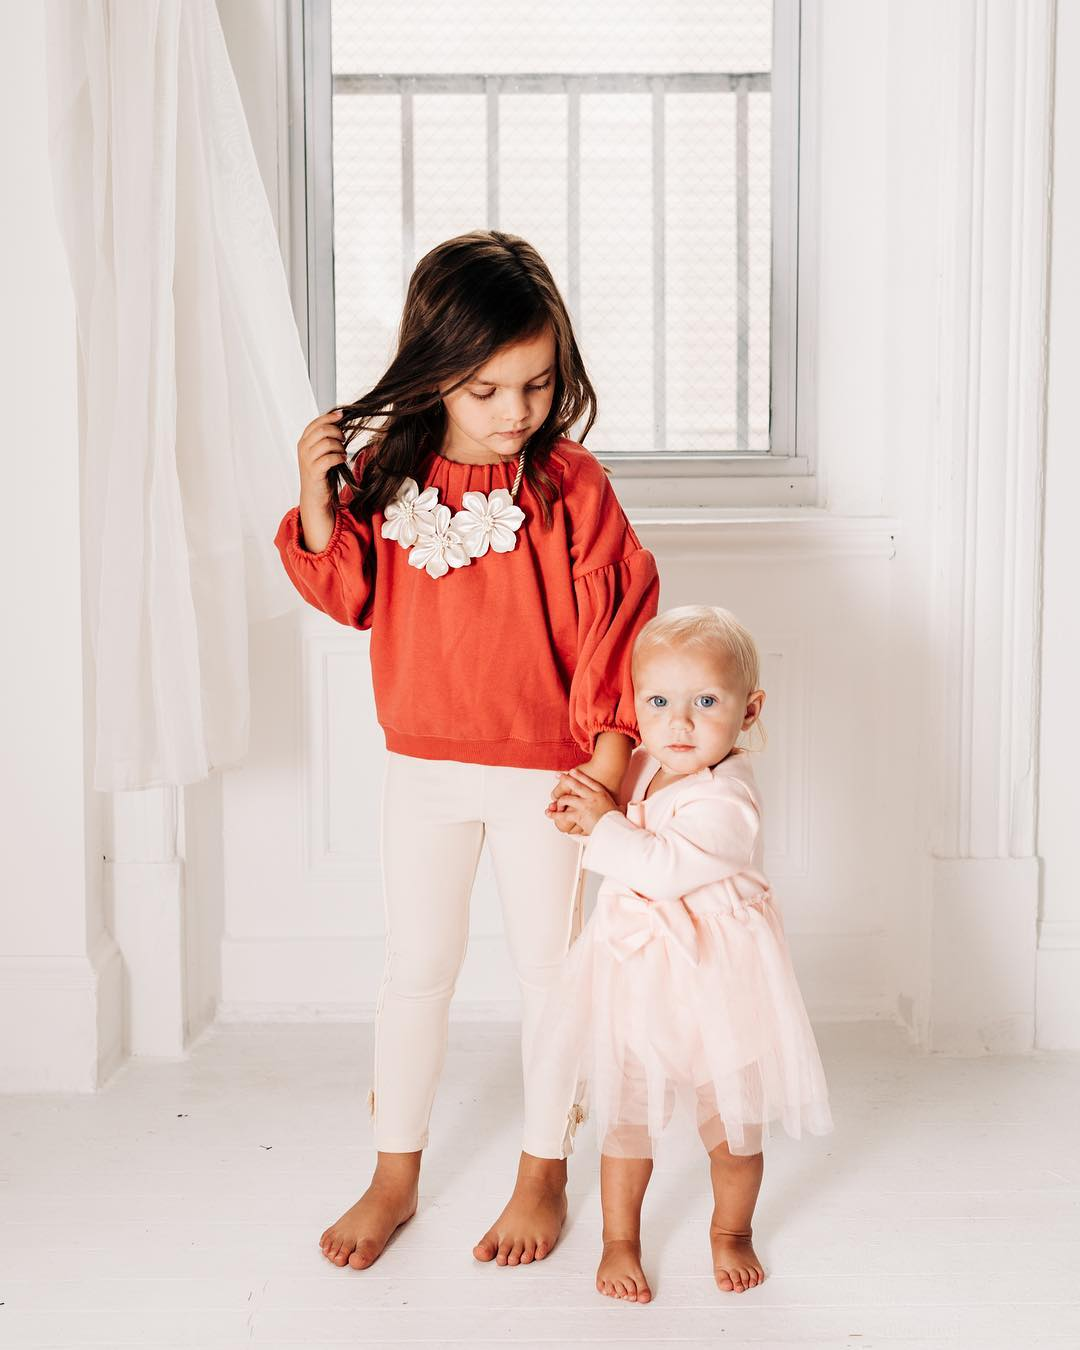 toddler & baby in outfit from Precious and Posh